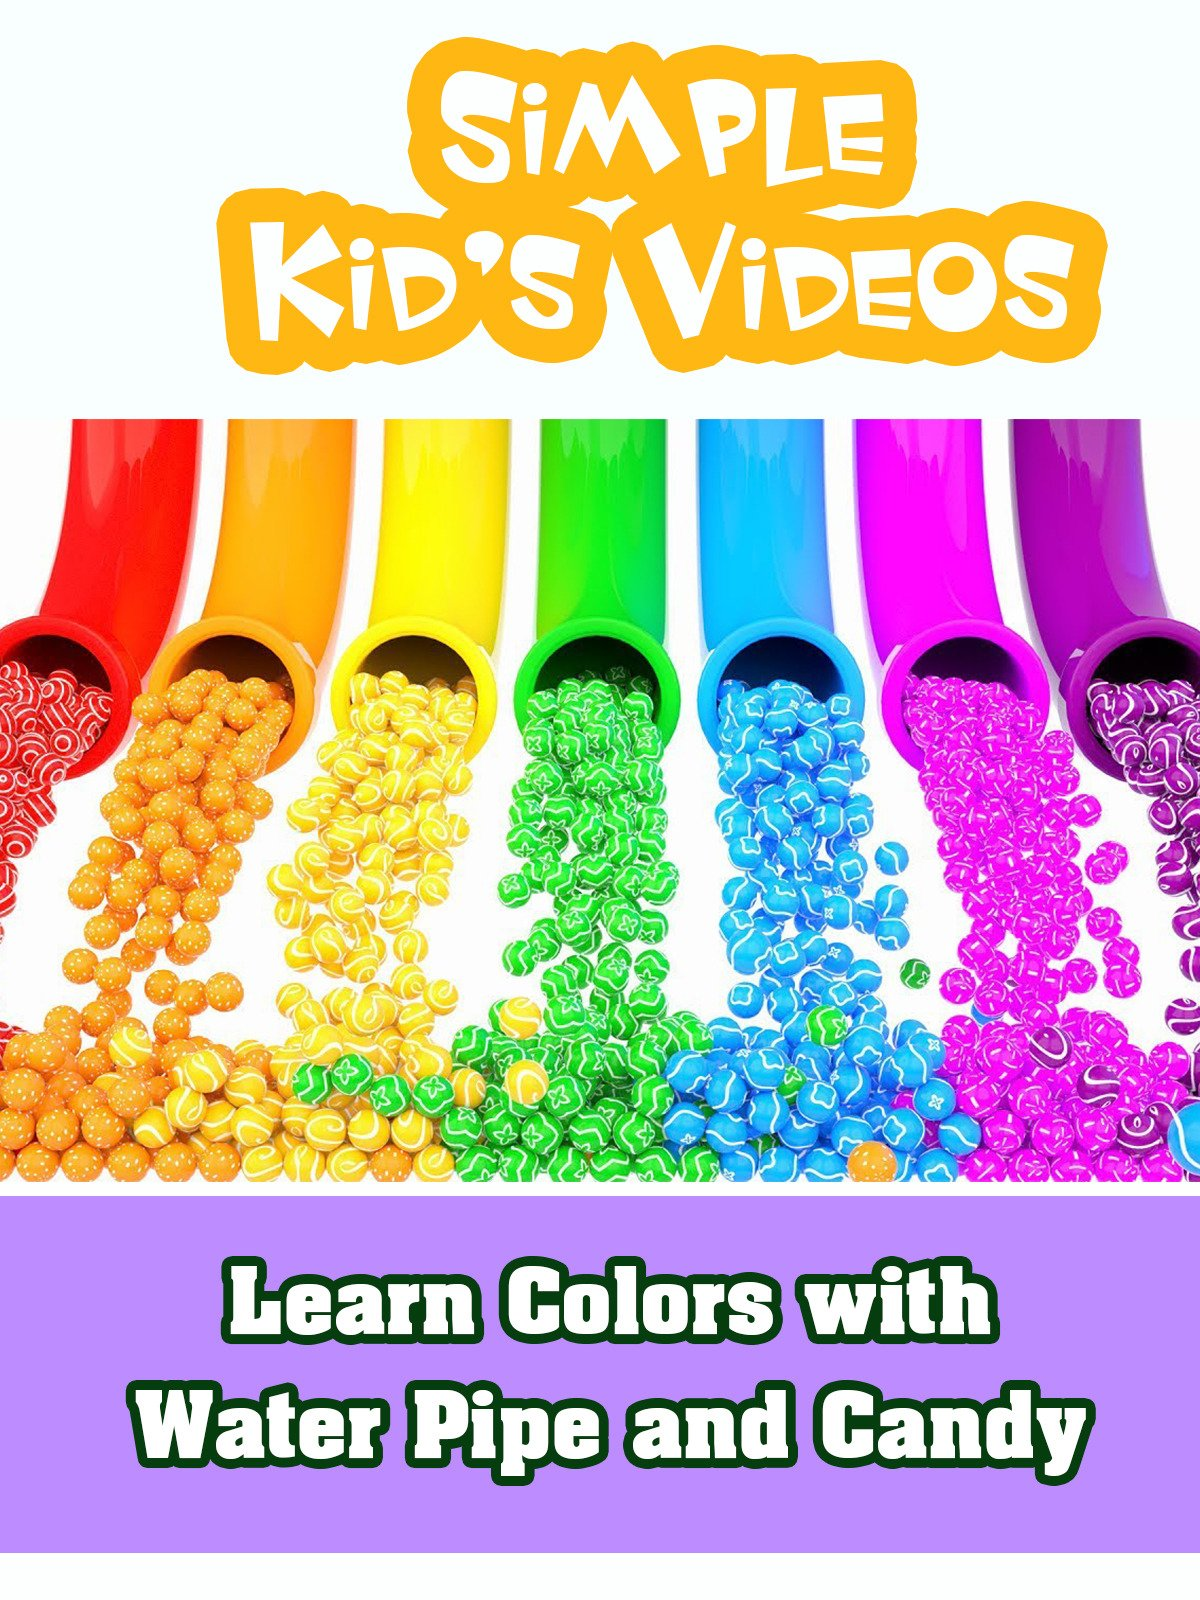 Learn Colors with Water Pipe and Candy